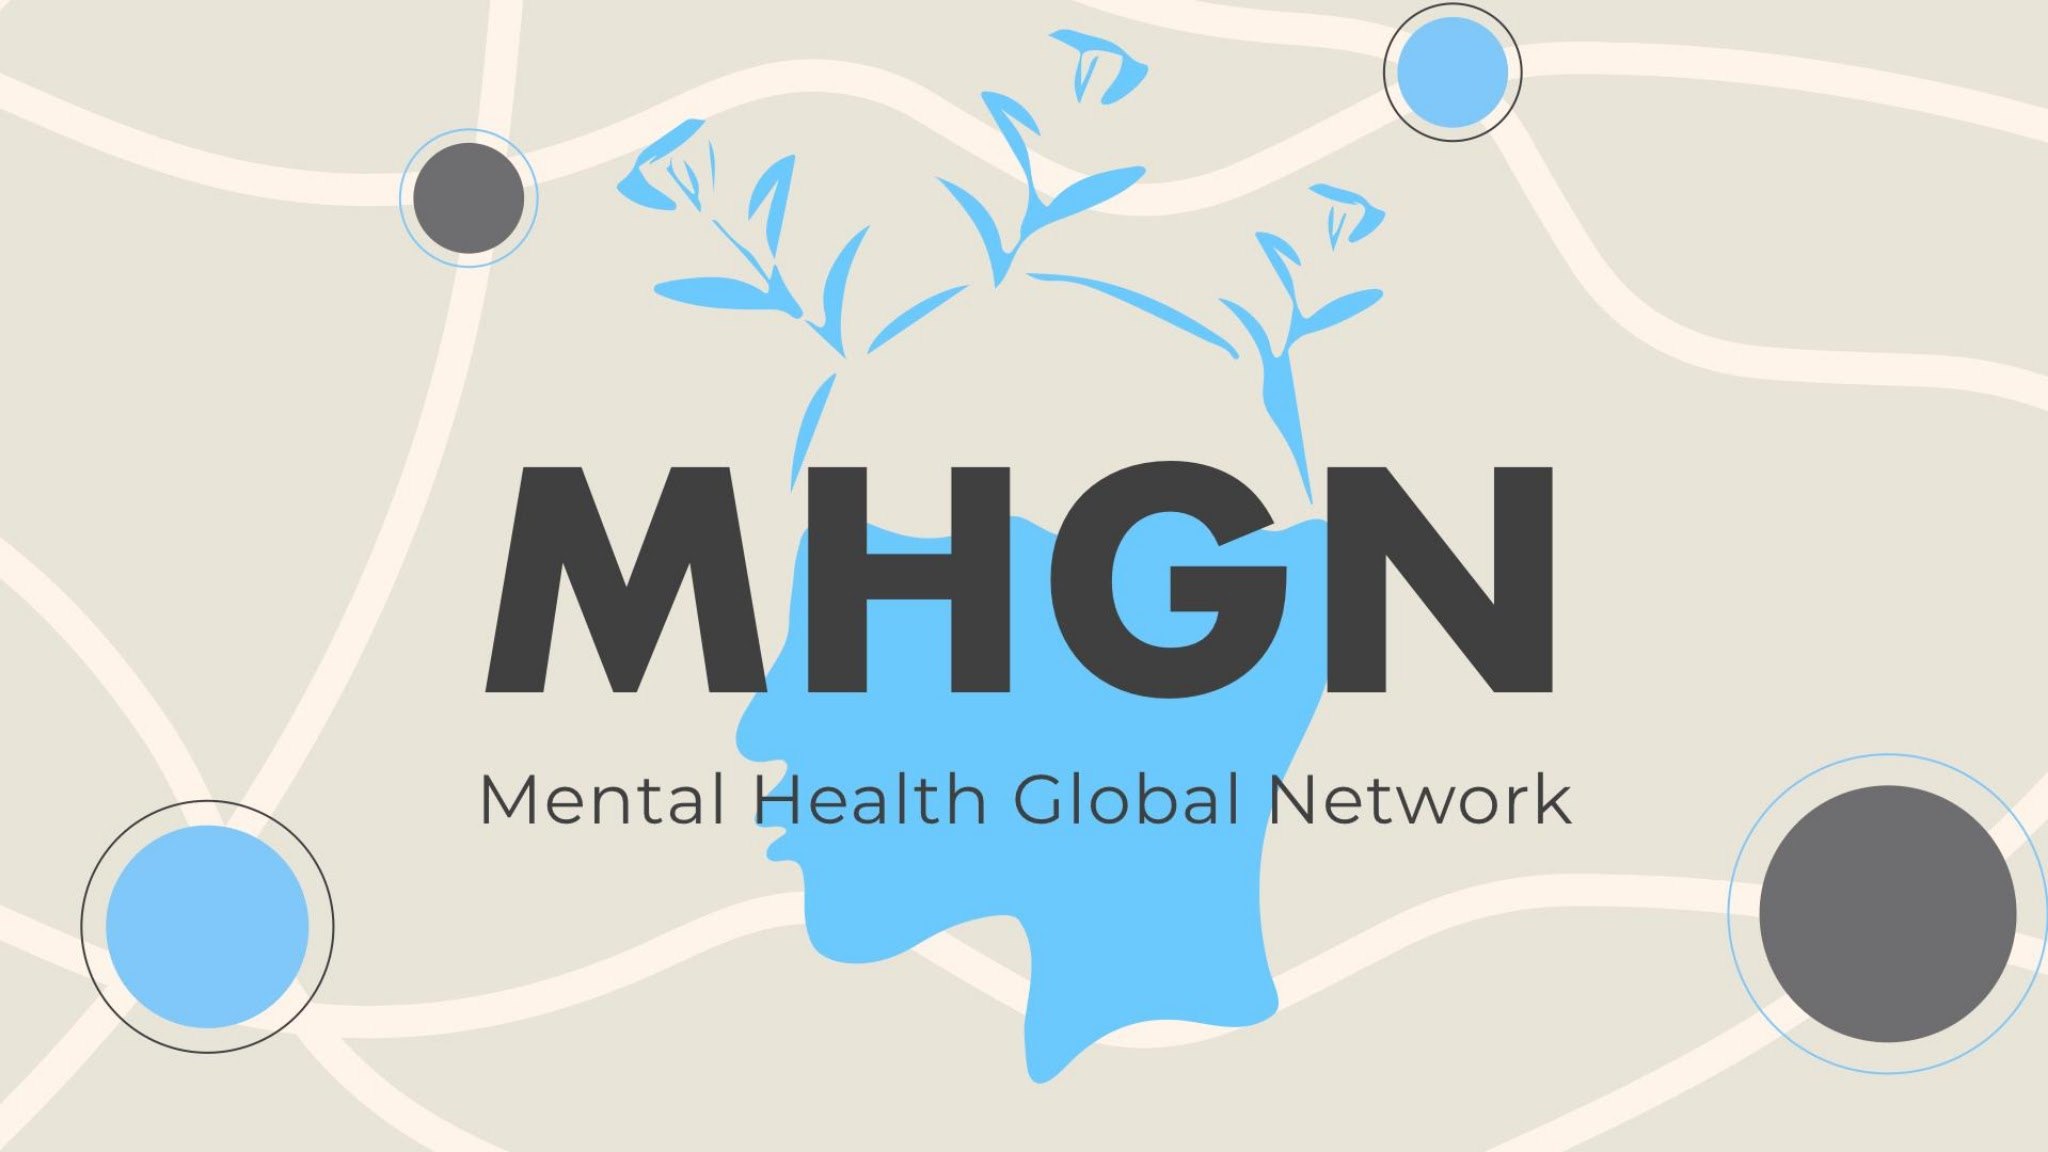 Mental Health Global Network